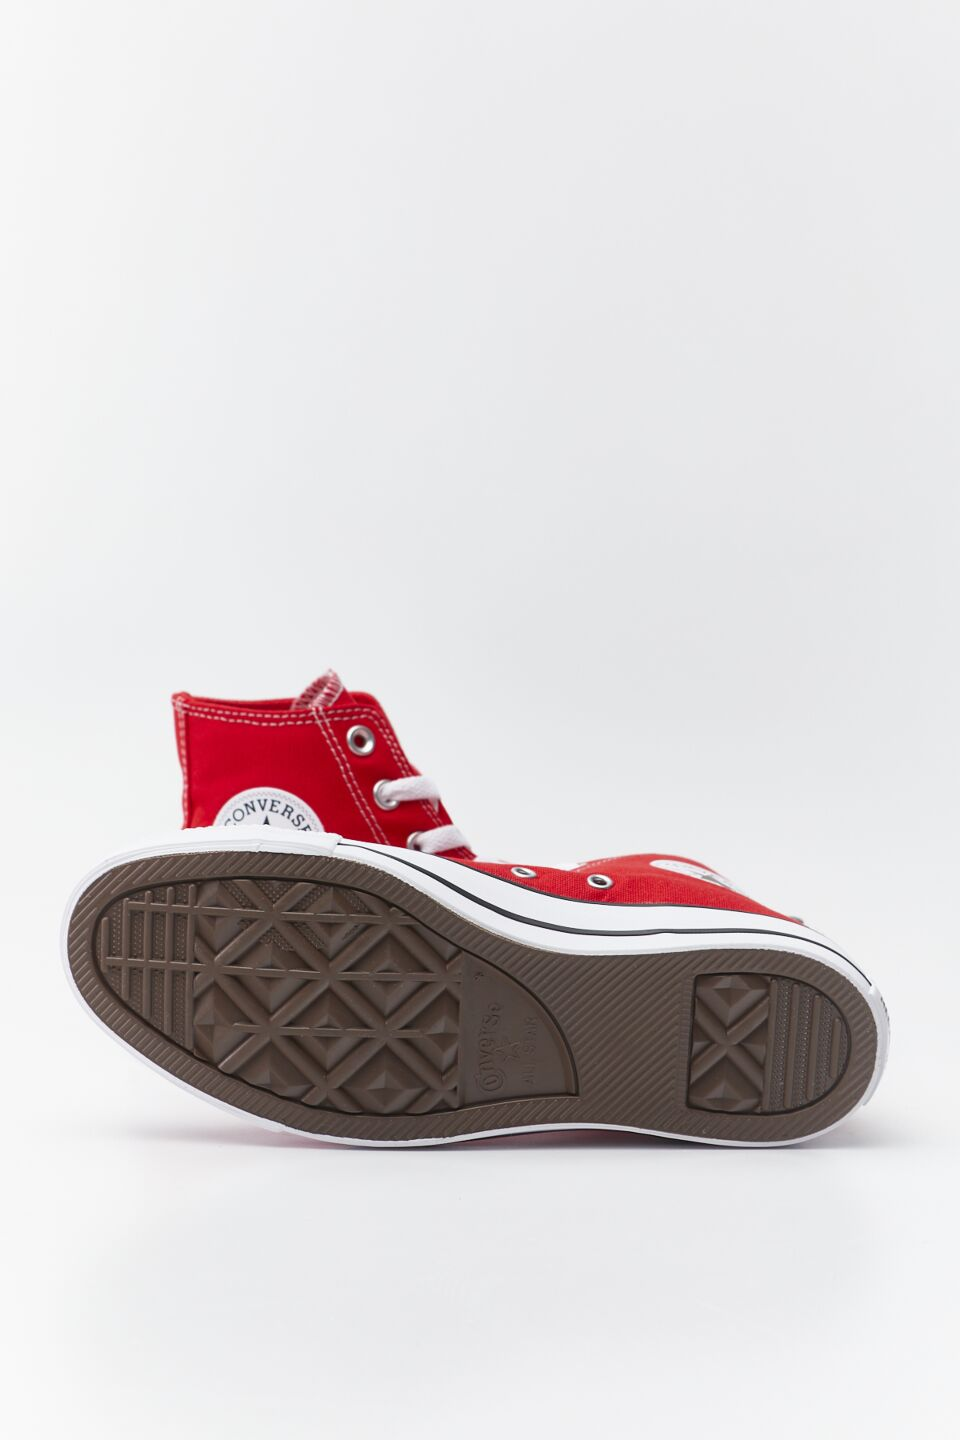 CHUCK TAYLOR ALL STAR SMILE 069 UNIVERSITY RED